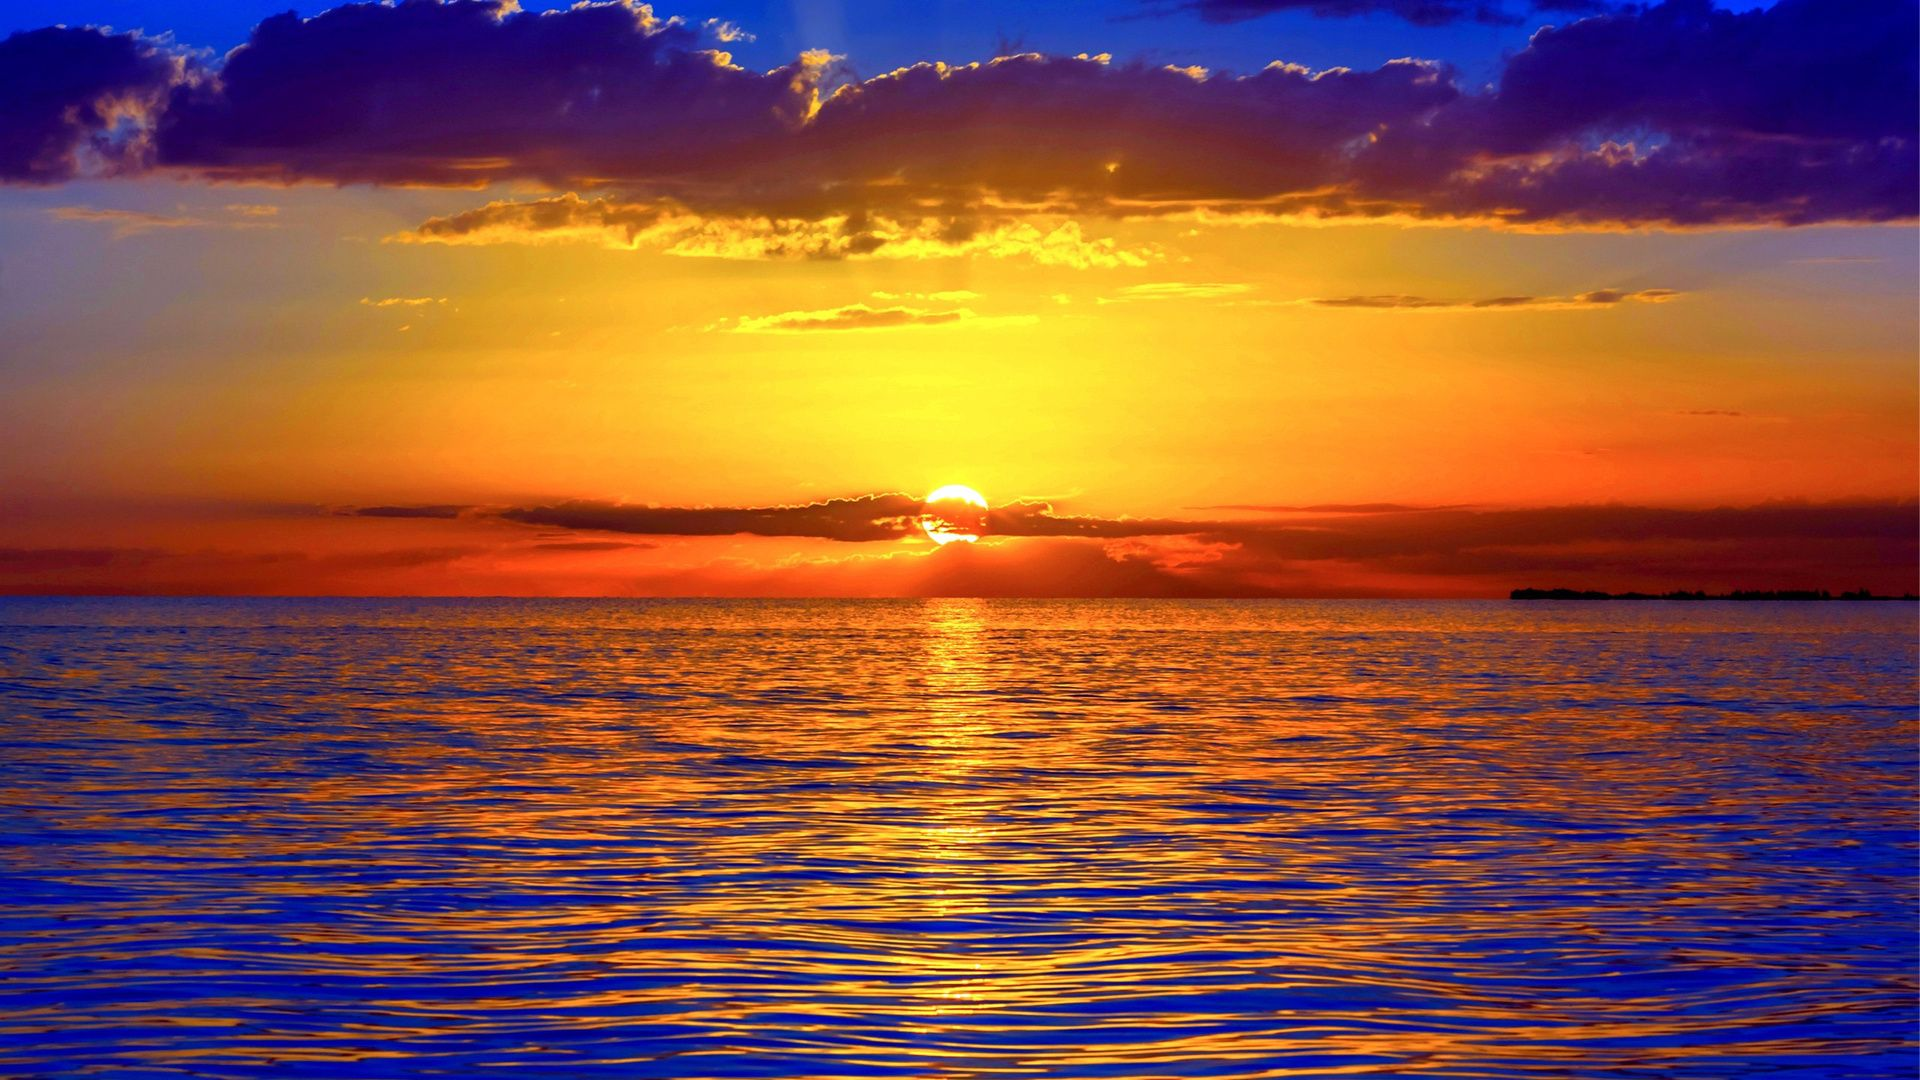 Beautiful Pictures Of The Sunset On The Sea